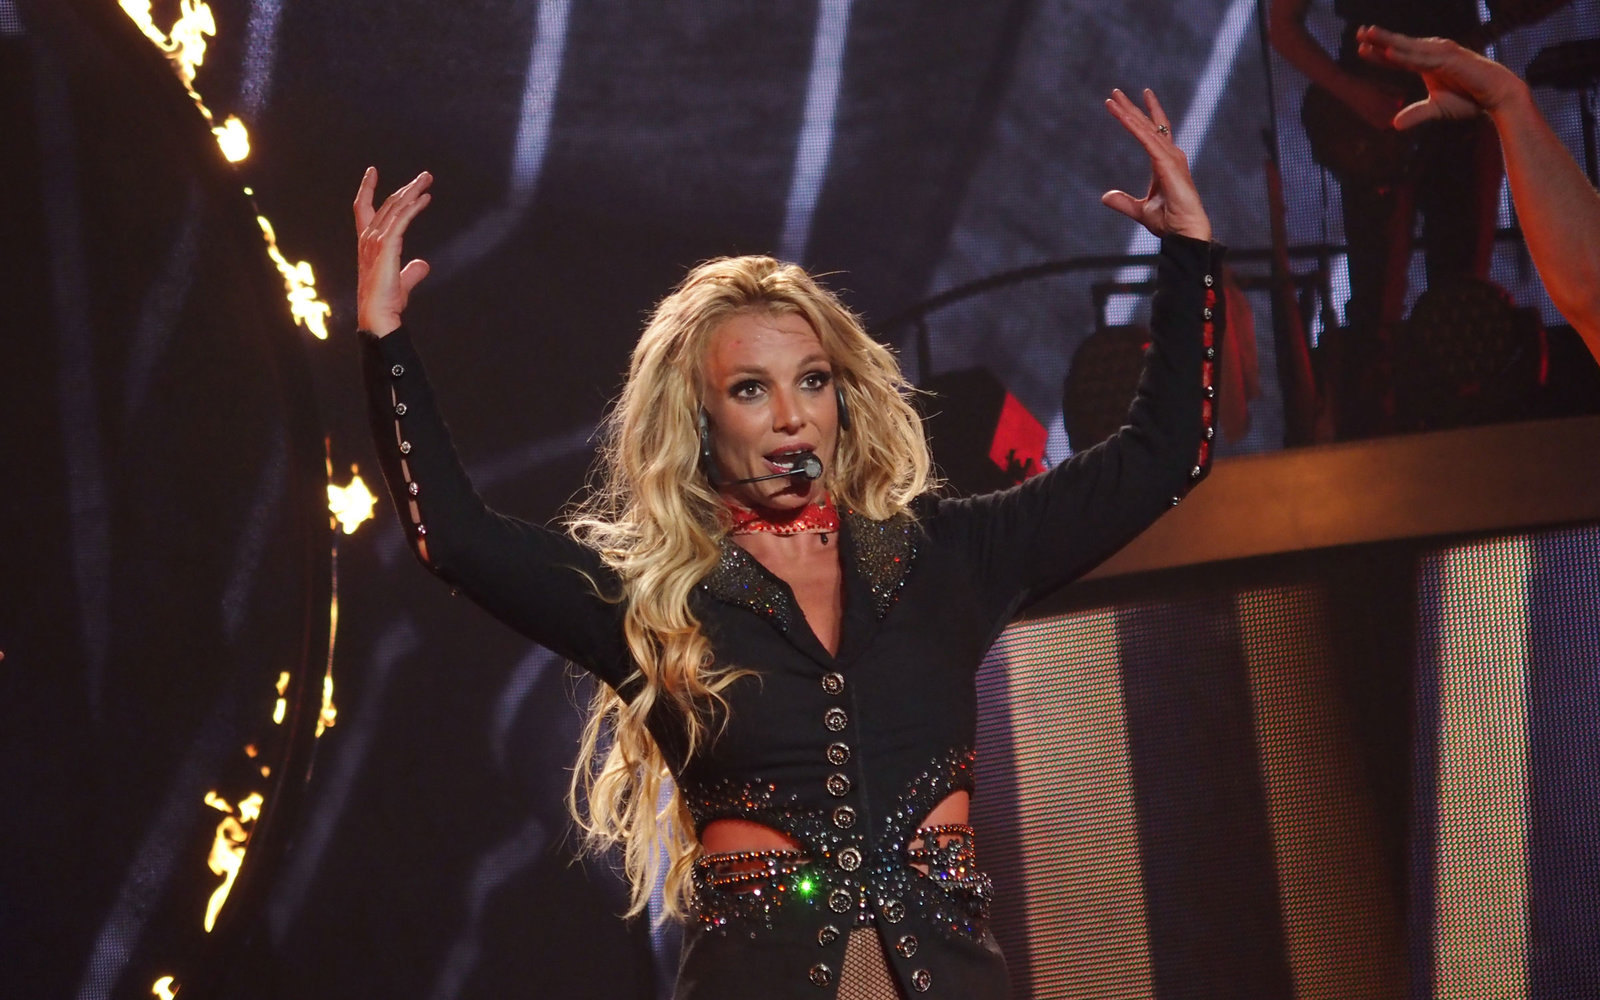 Britney Spears at VMAs (so hopefully you weren't expecting to see her in Vegas that night)